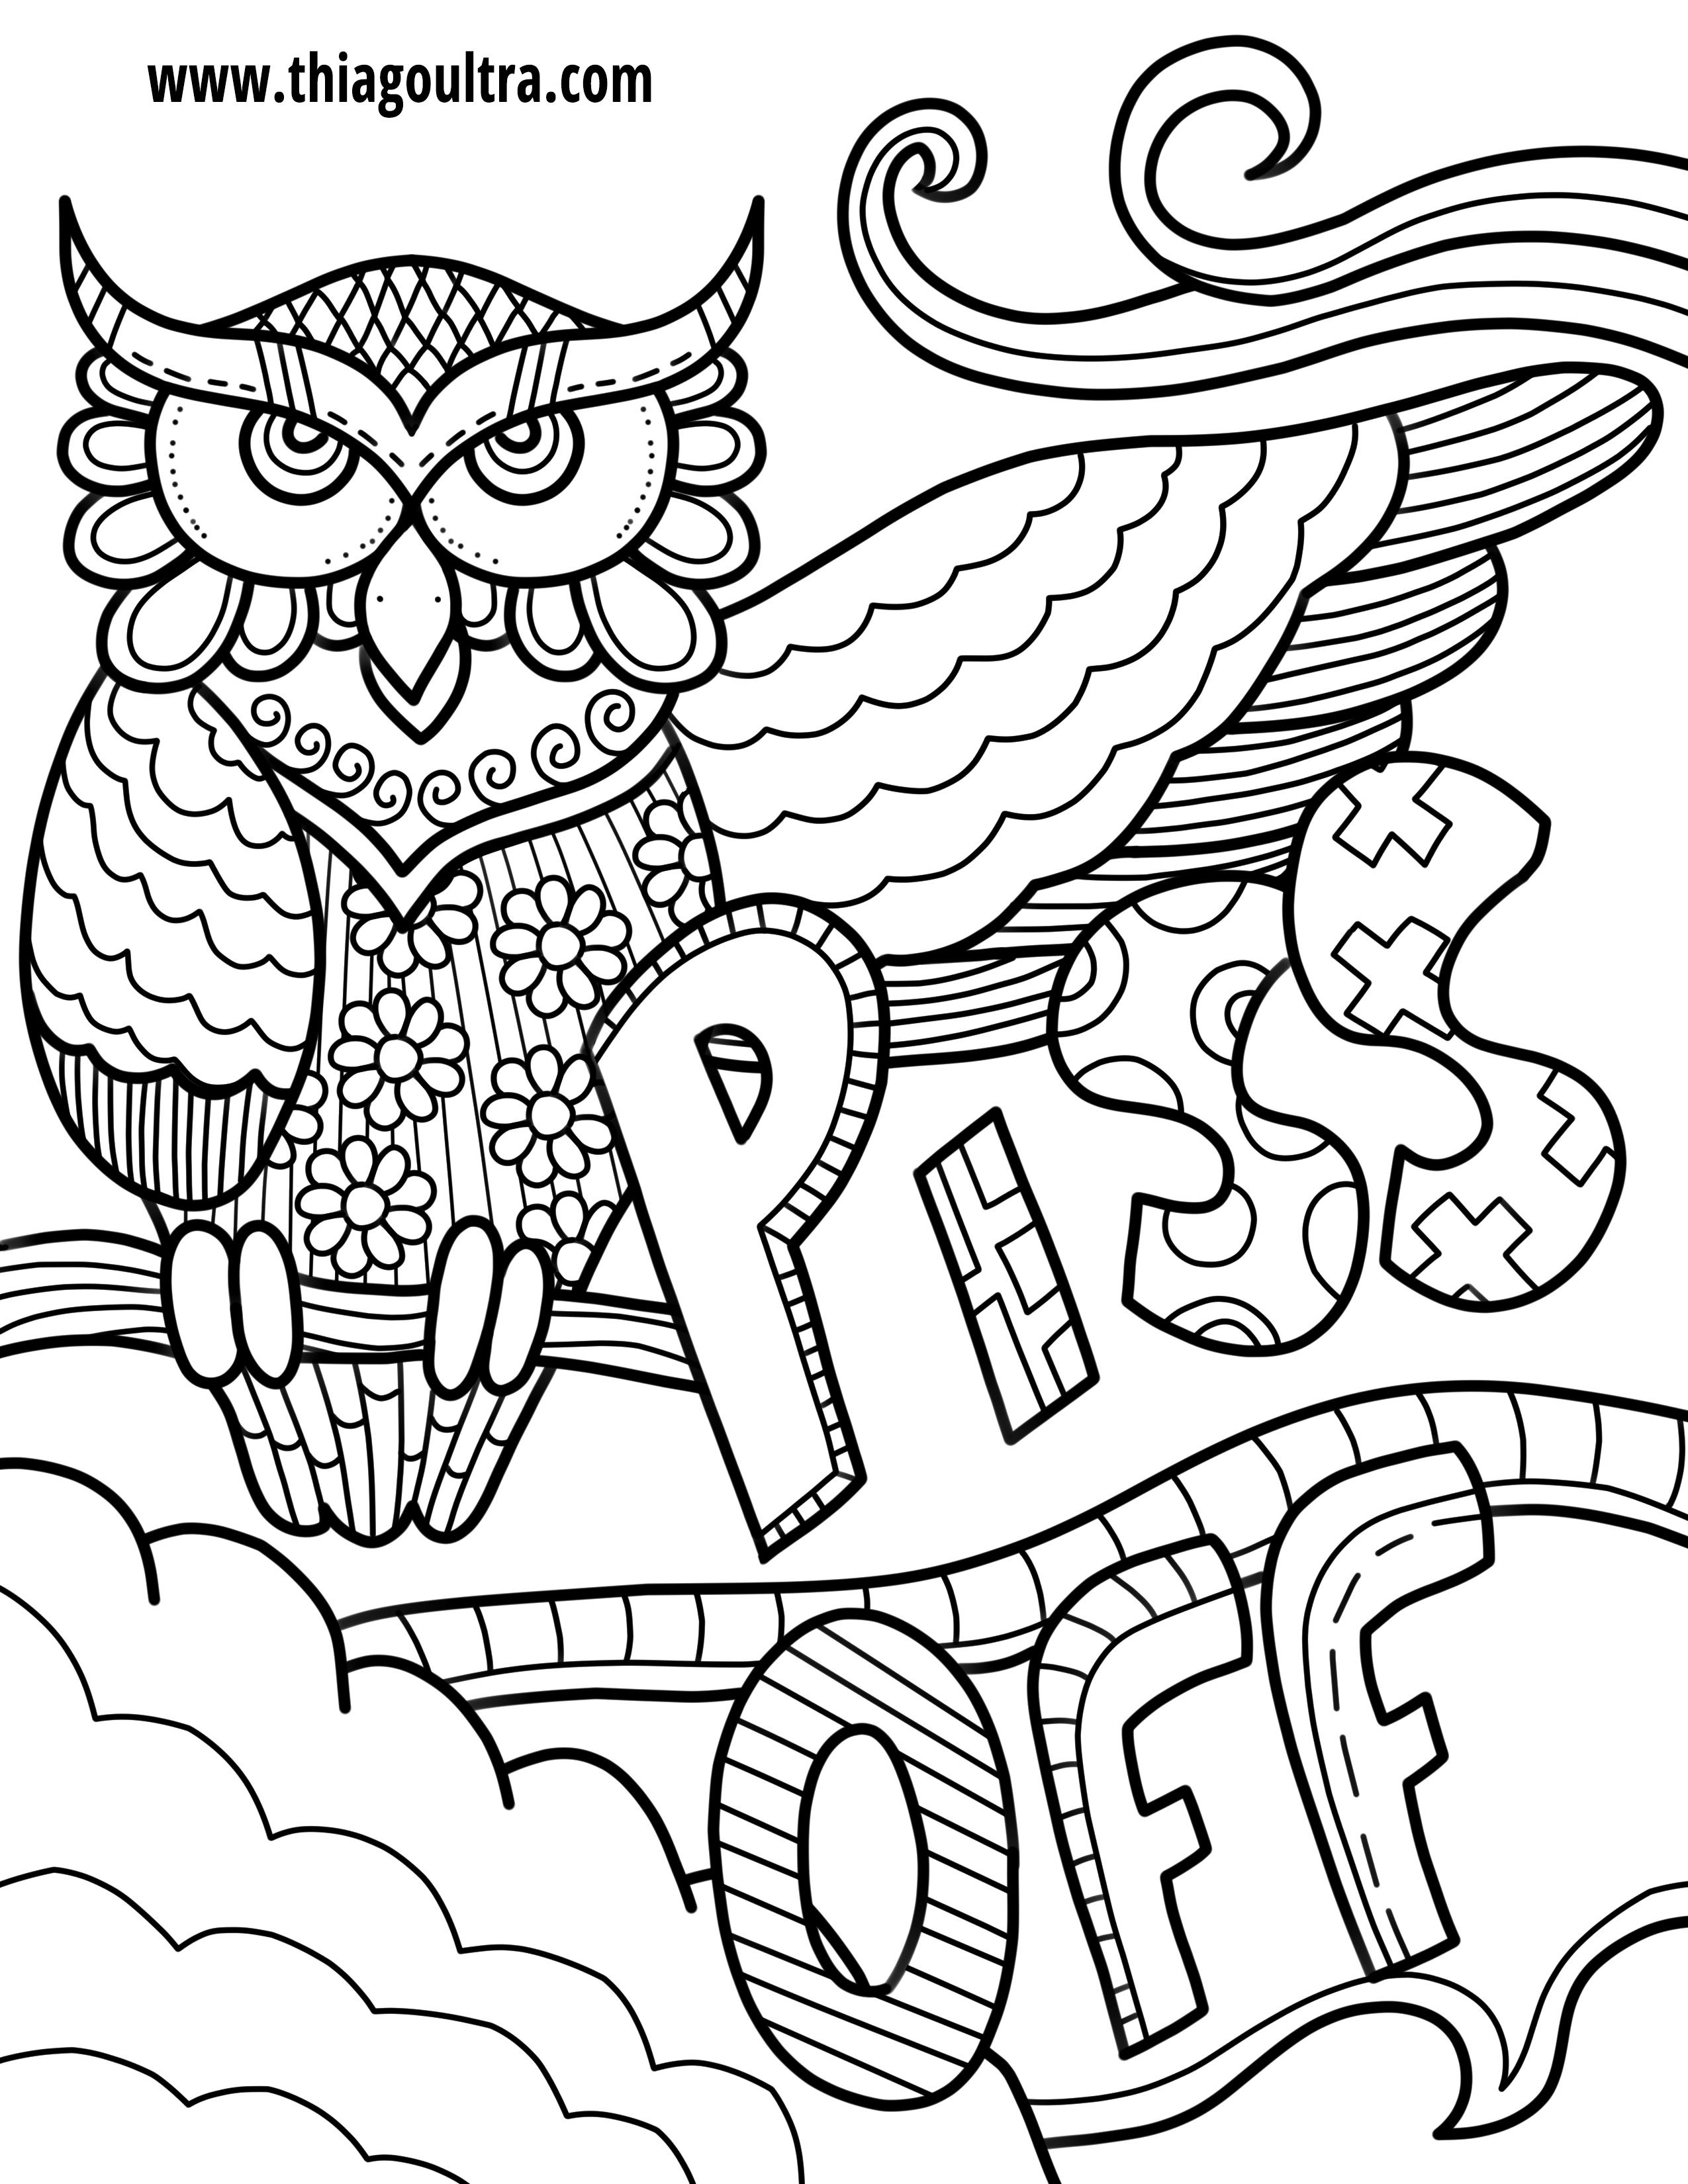 Challenge Free Printable Coloring Pages For Adults Only Swear Words - Free Printable Coloring Pages For Adults Only